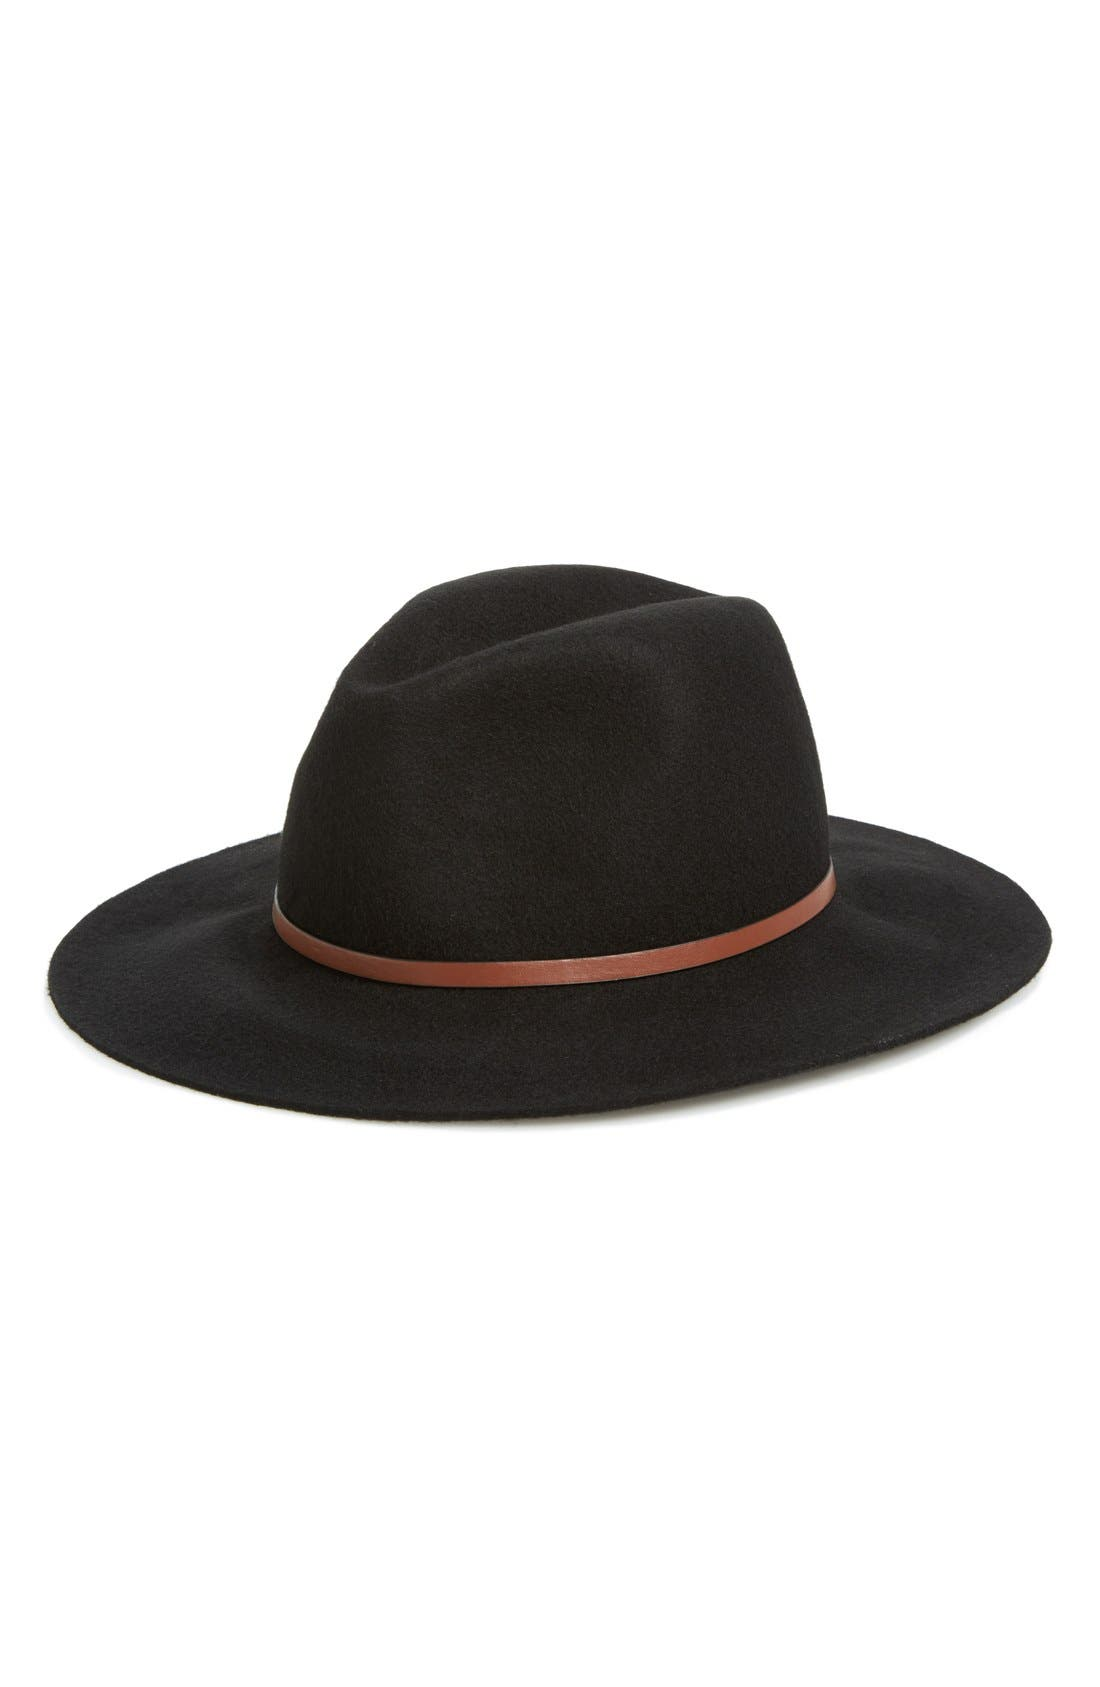 HINGE Faux Leather Trim Wool Felt Panama Hat, Main, color, 001